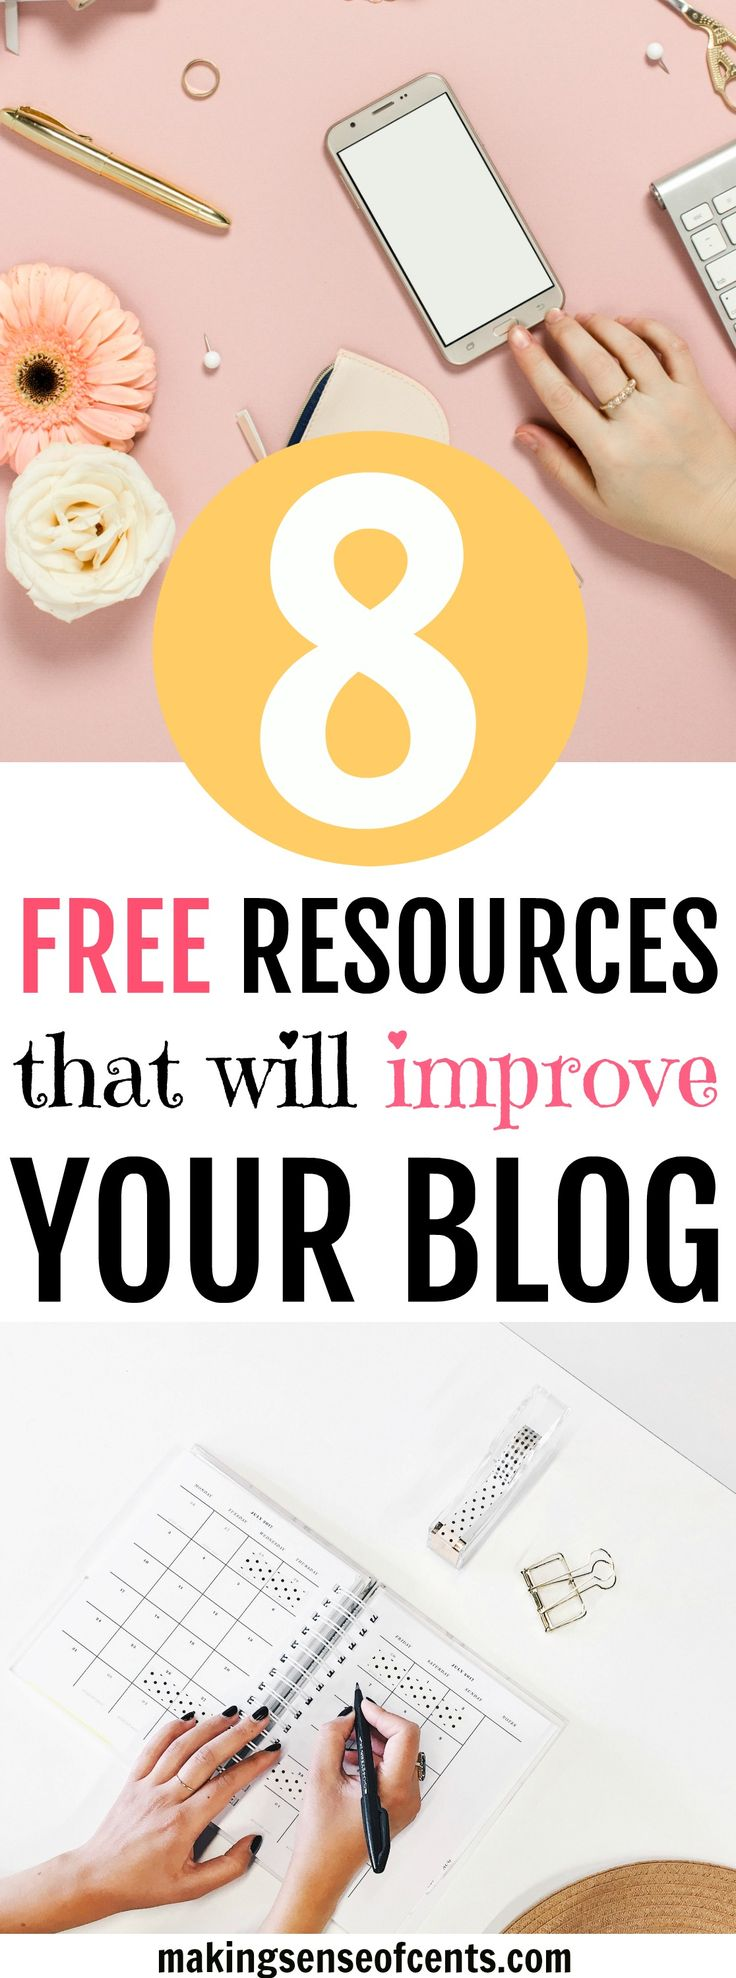 Looking to improve your blog? Here are 8 blogging freebies that will help you improve your blog. #blogfreebies #howtostartablog #blogging